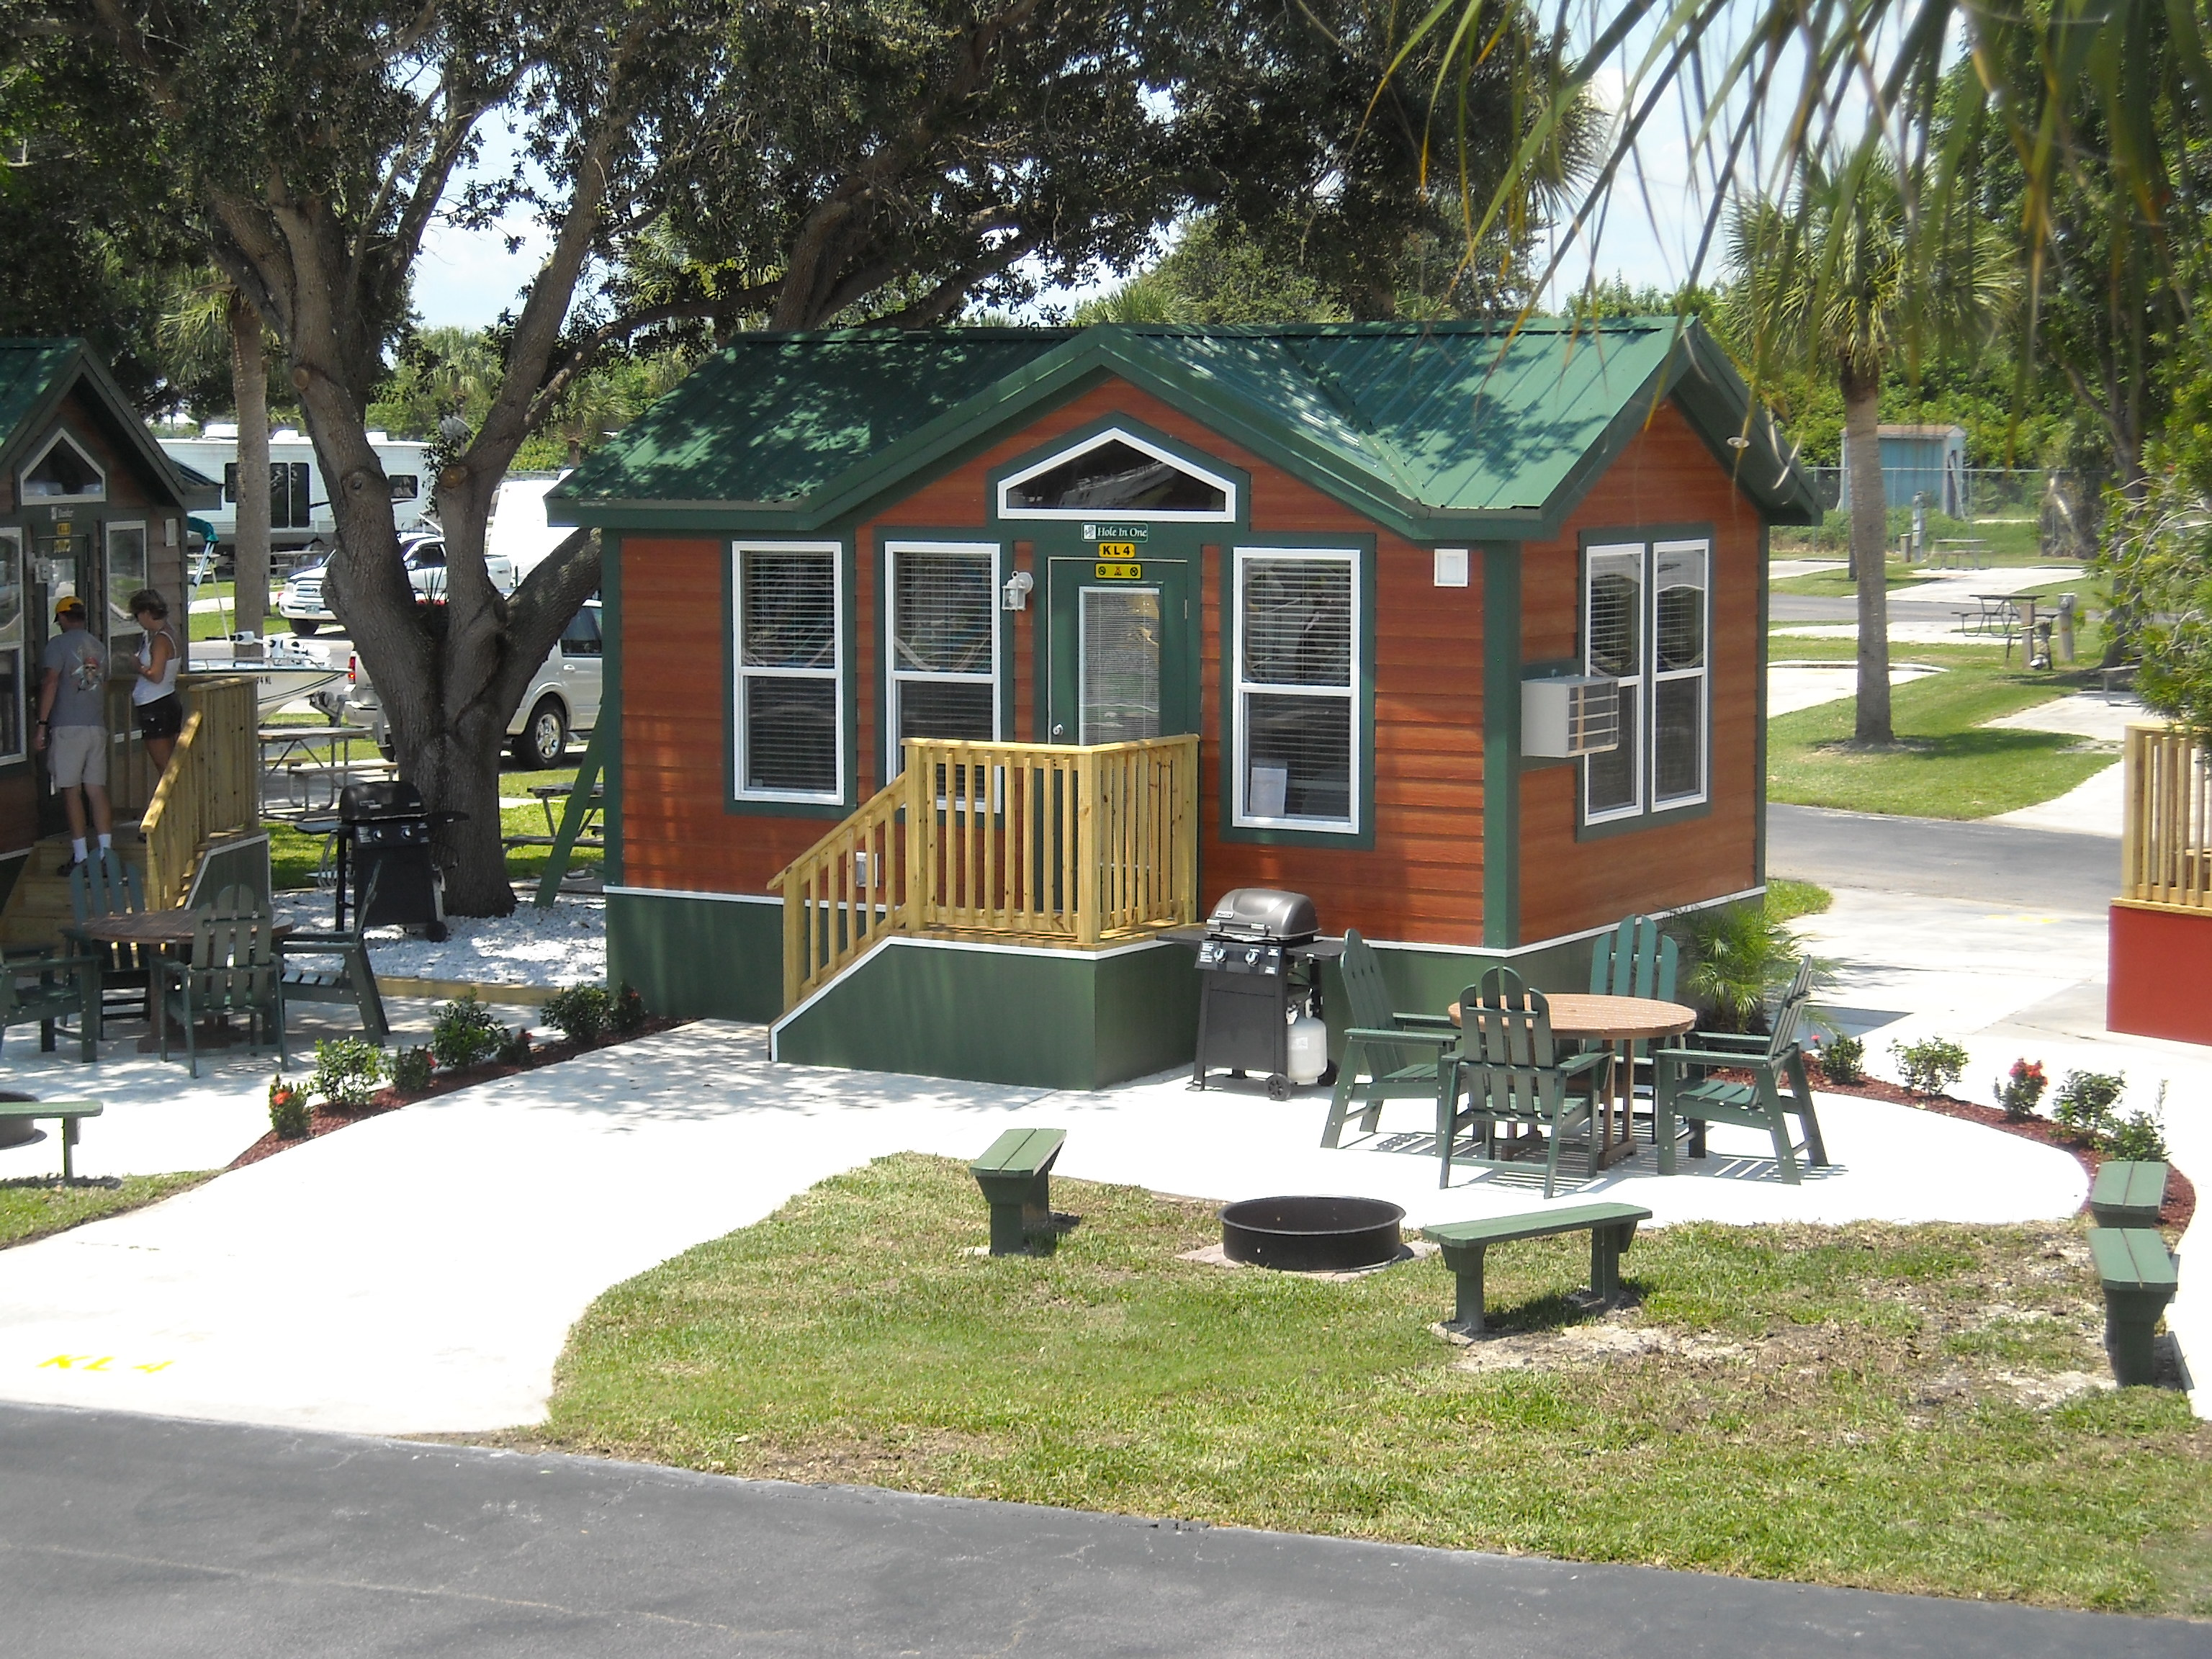 to cabin and party trailer cabins rv disney florida rentals meacham meachams brings at s travel fort disneys rental resort you wilderness the campground